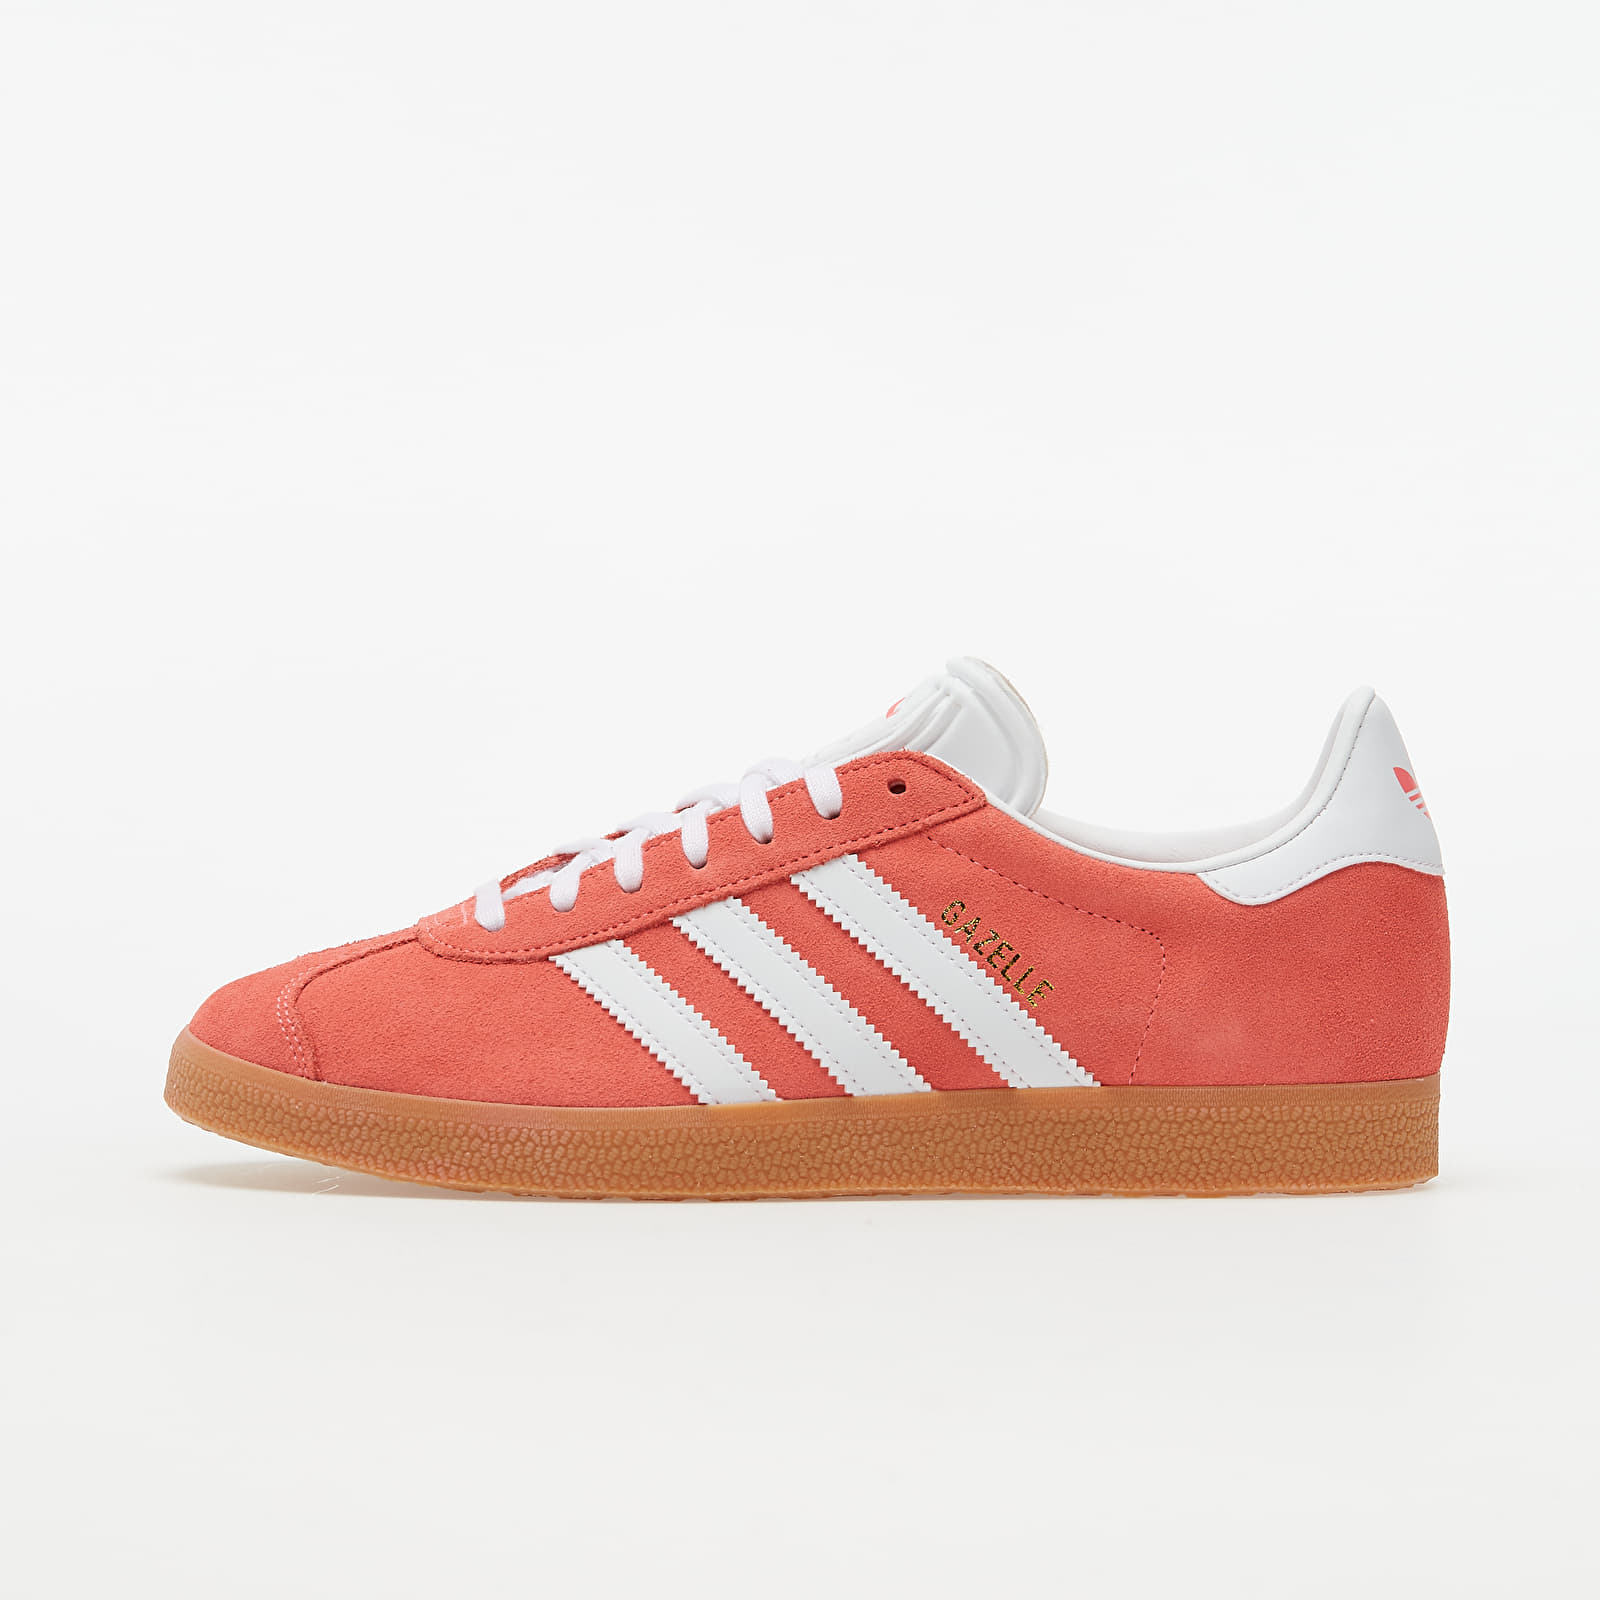 adidas Gazelle W Semi Flash Red/ Ftw White/ Gum 2 EUR 37 1/3